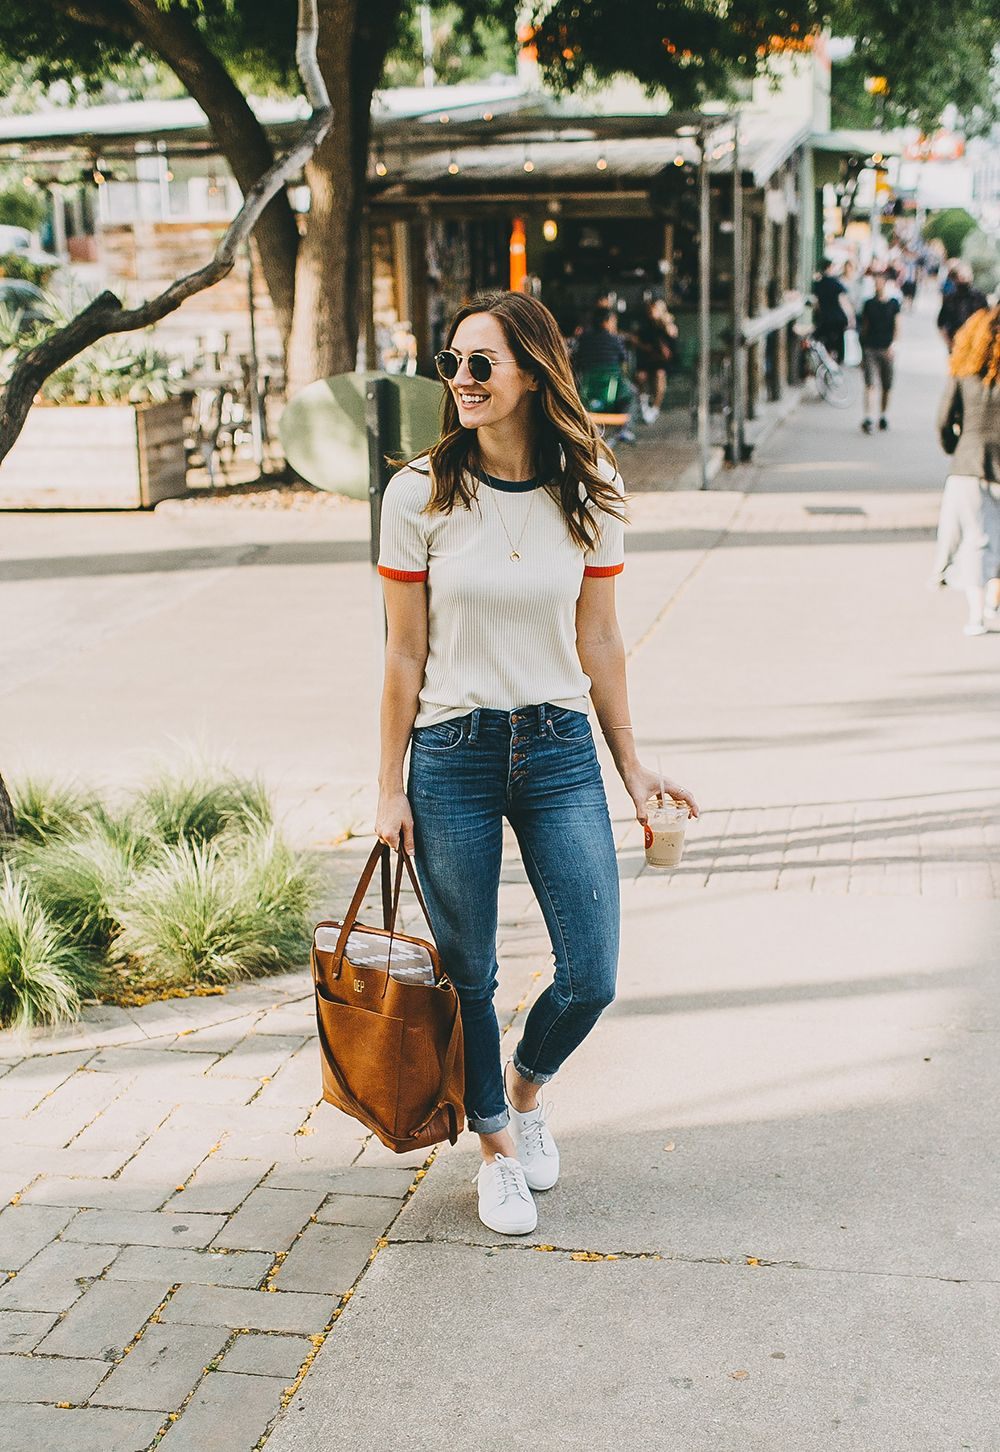 38c5ab62c65c livvyland-blog-olivia-watson-fit-flop-white-leather-sneakers-outfit ...